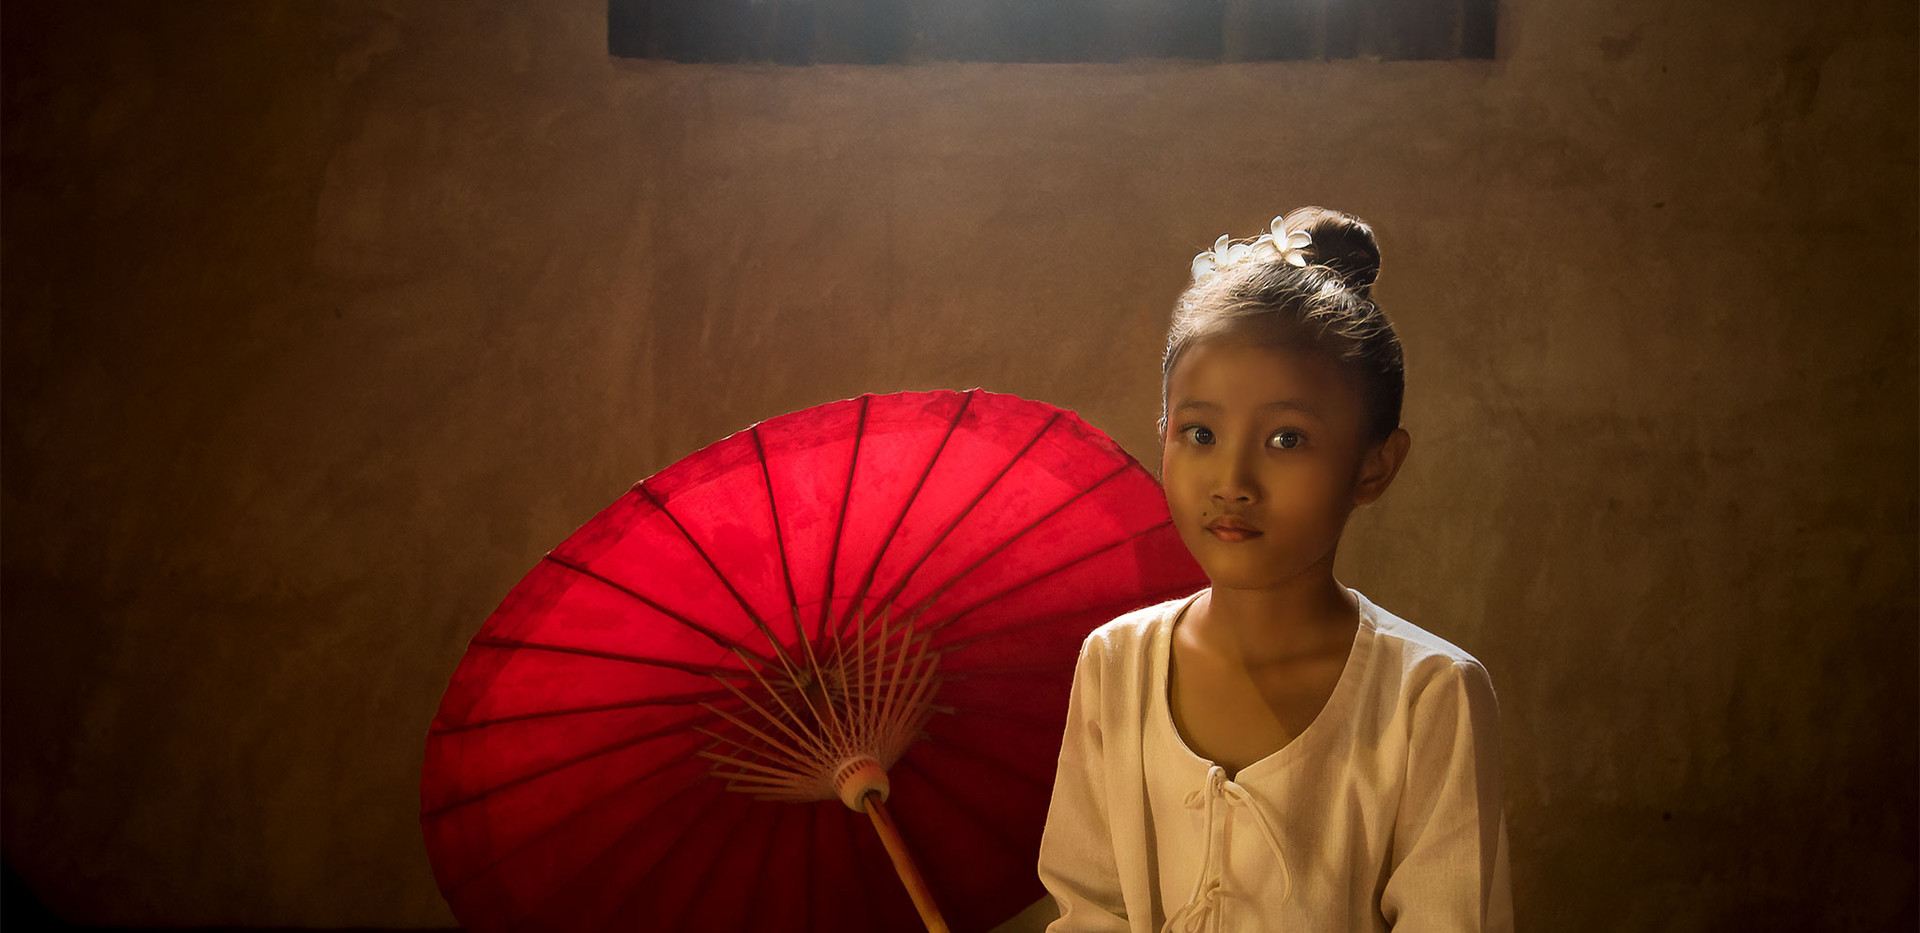 Girl in the temple - Chiang Mai